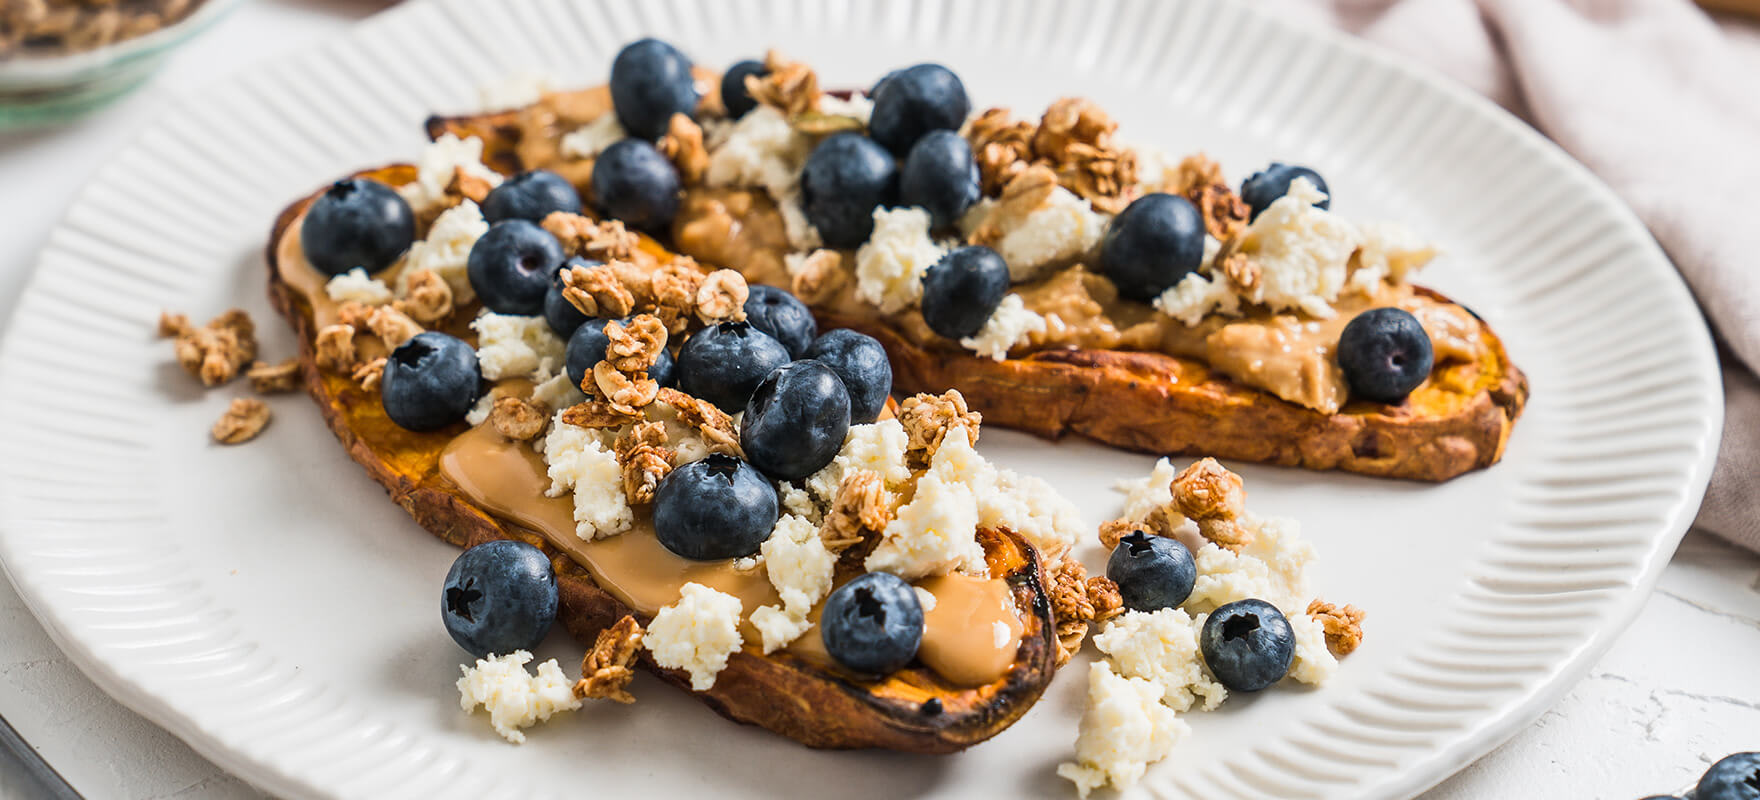 Sweet potato toast with peanut butter, ricotta & blueberries image 2